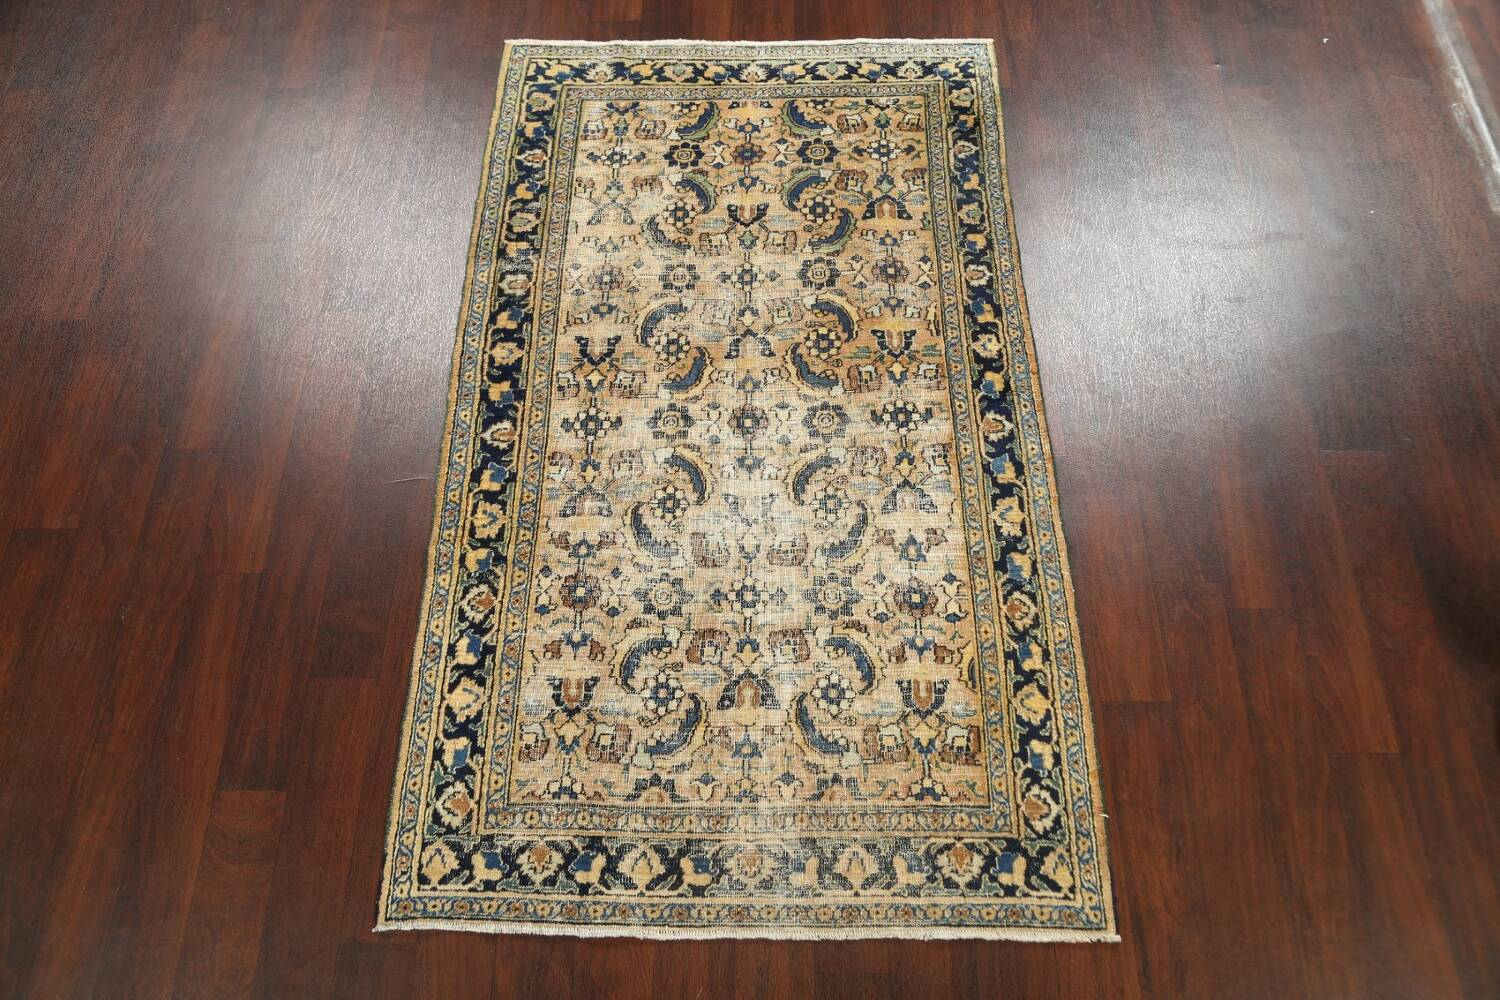 Pre-1900 Antique Vegetable Dye Sultanabad Persian Area Rug 4x7 image 17